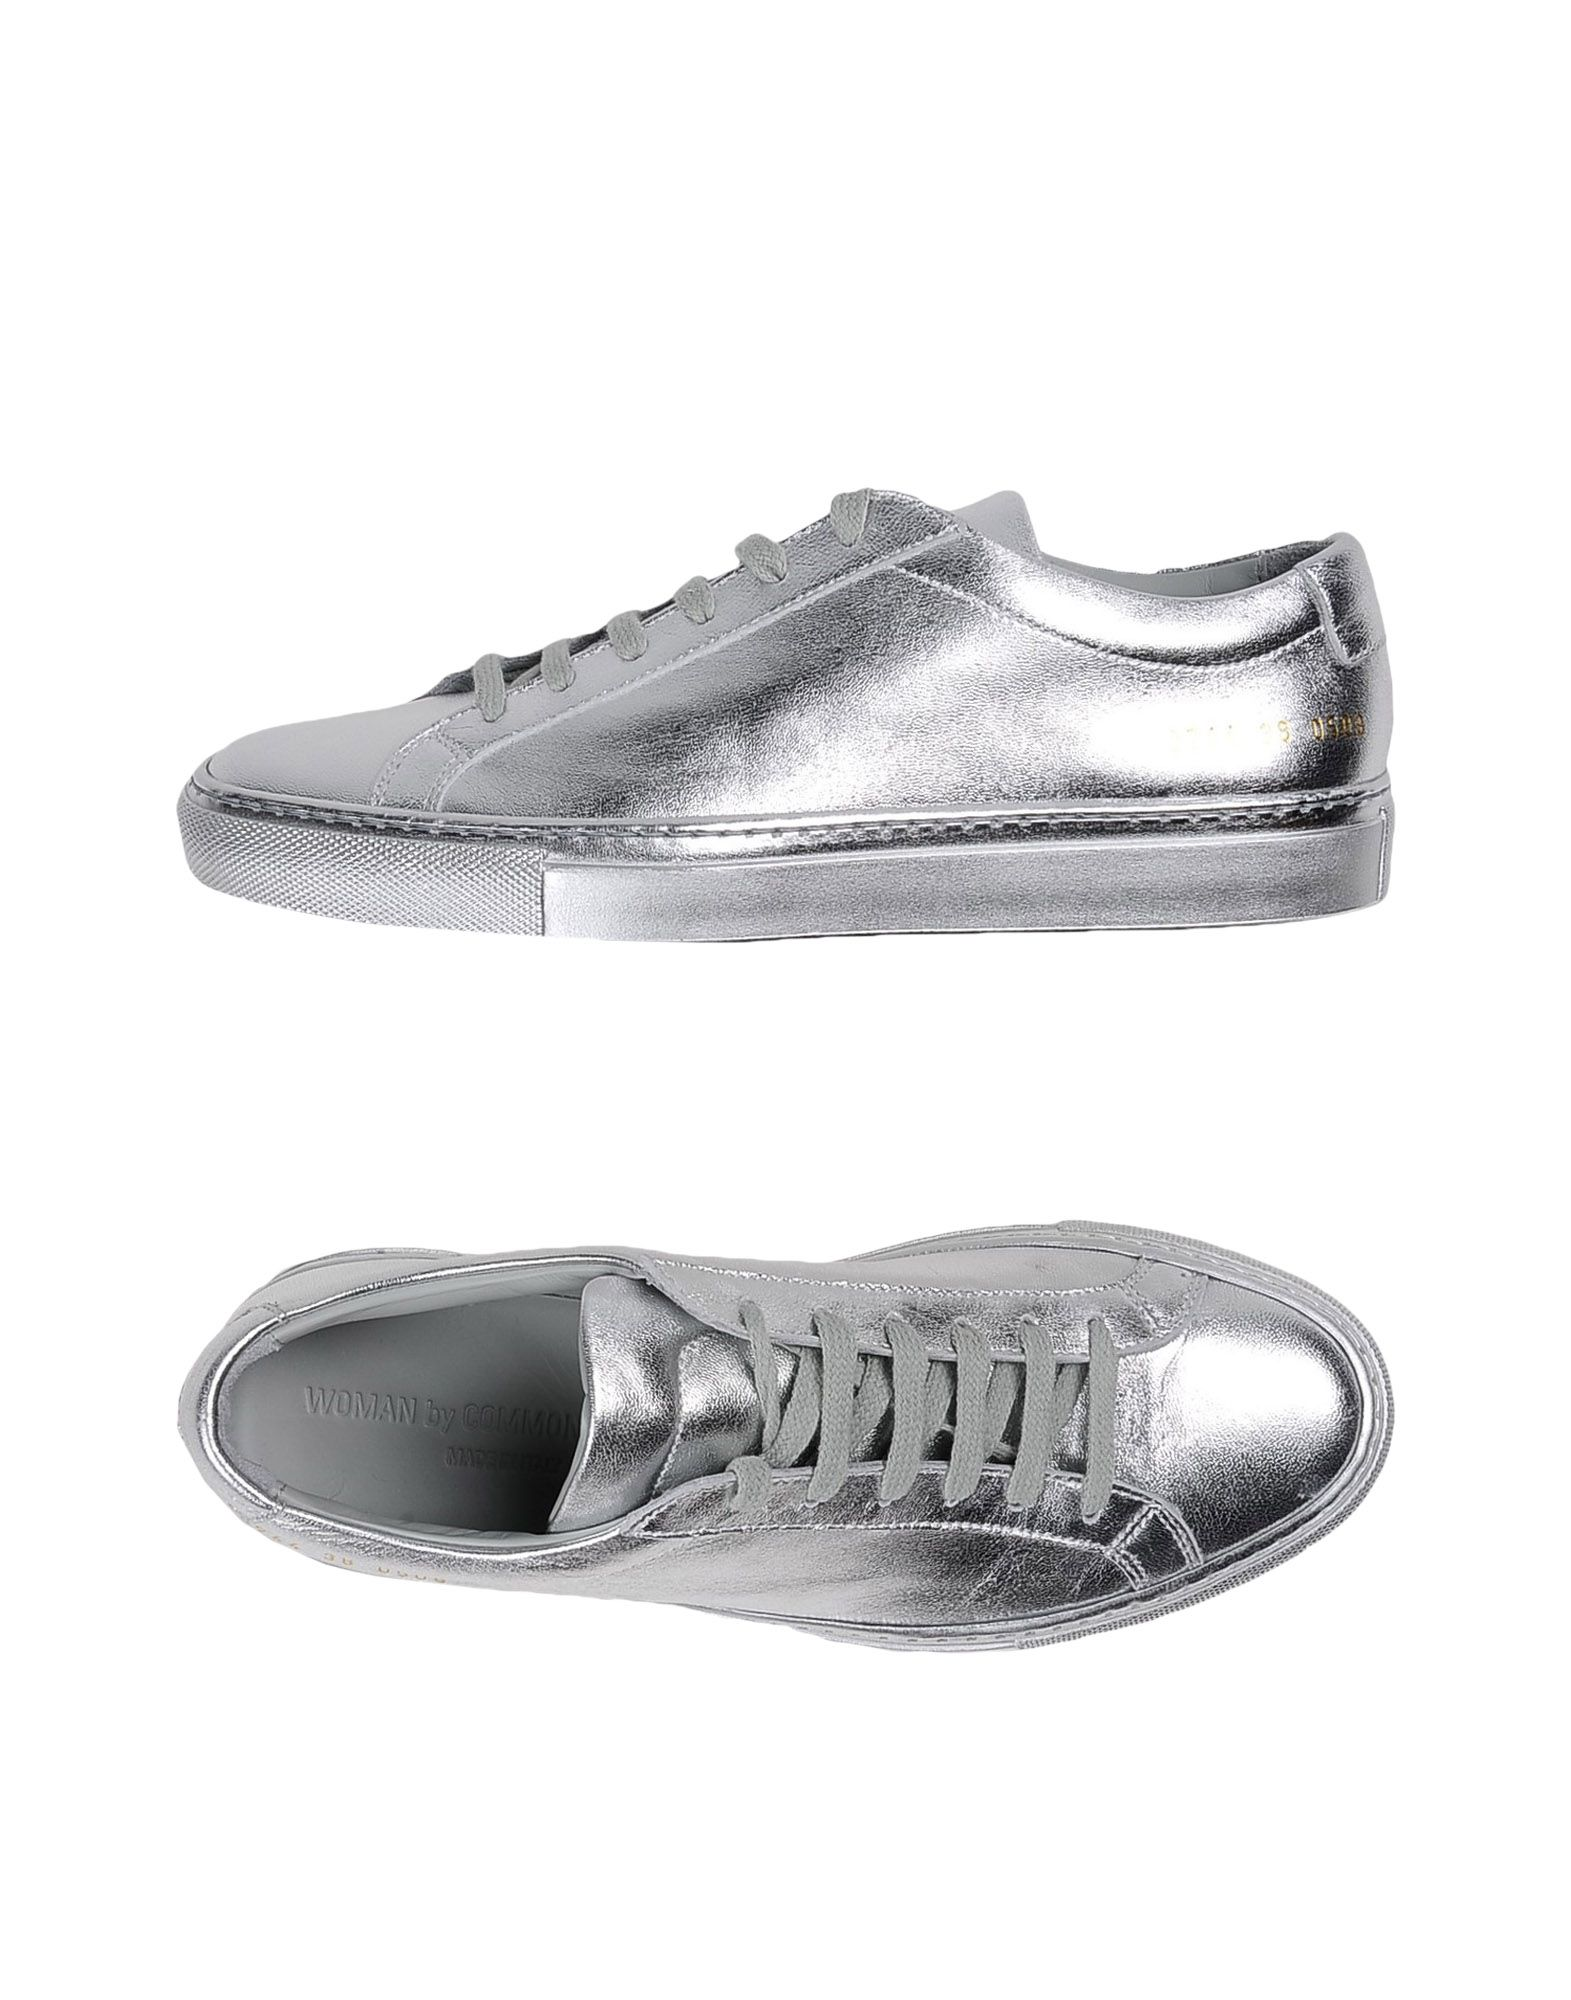 WOMAN by COMMON PROJECTS Низкие кеды и кроссовки managing projects made simple